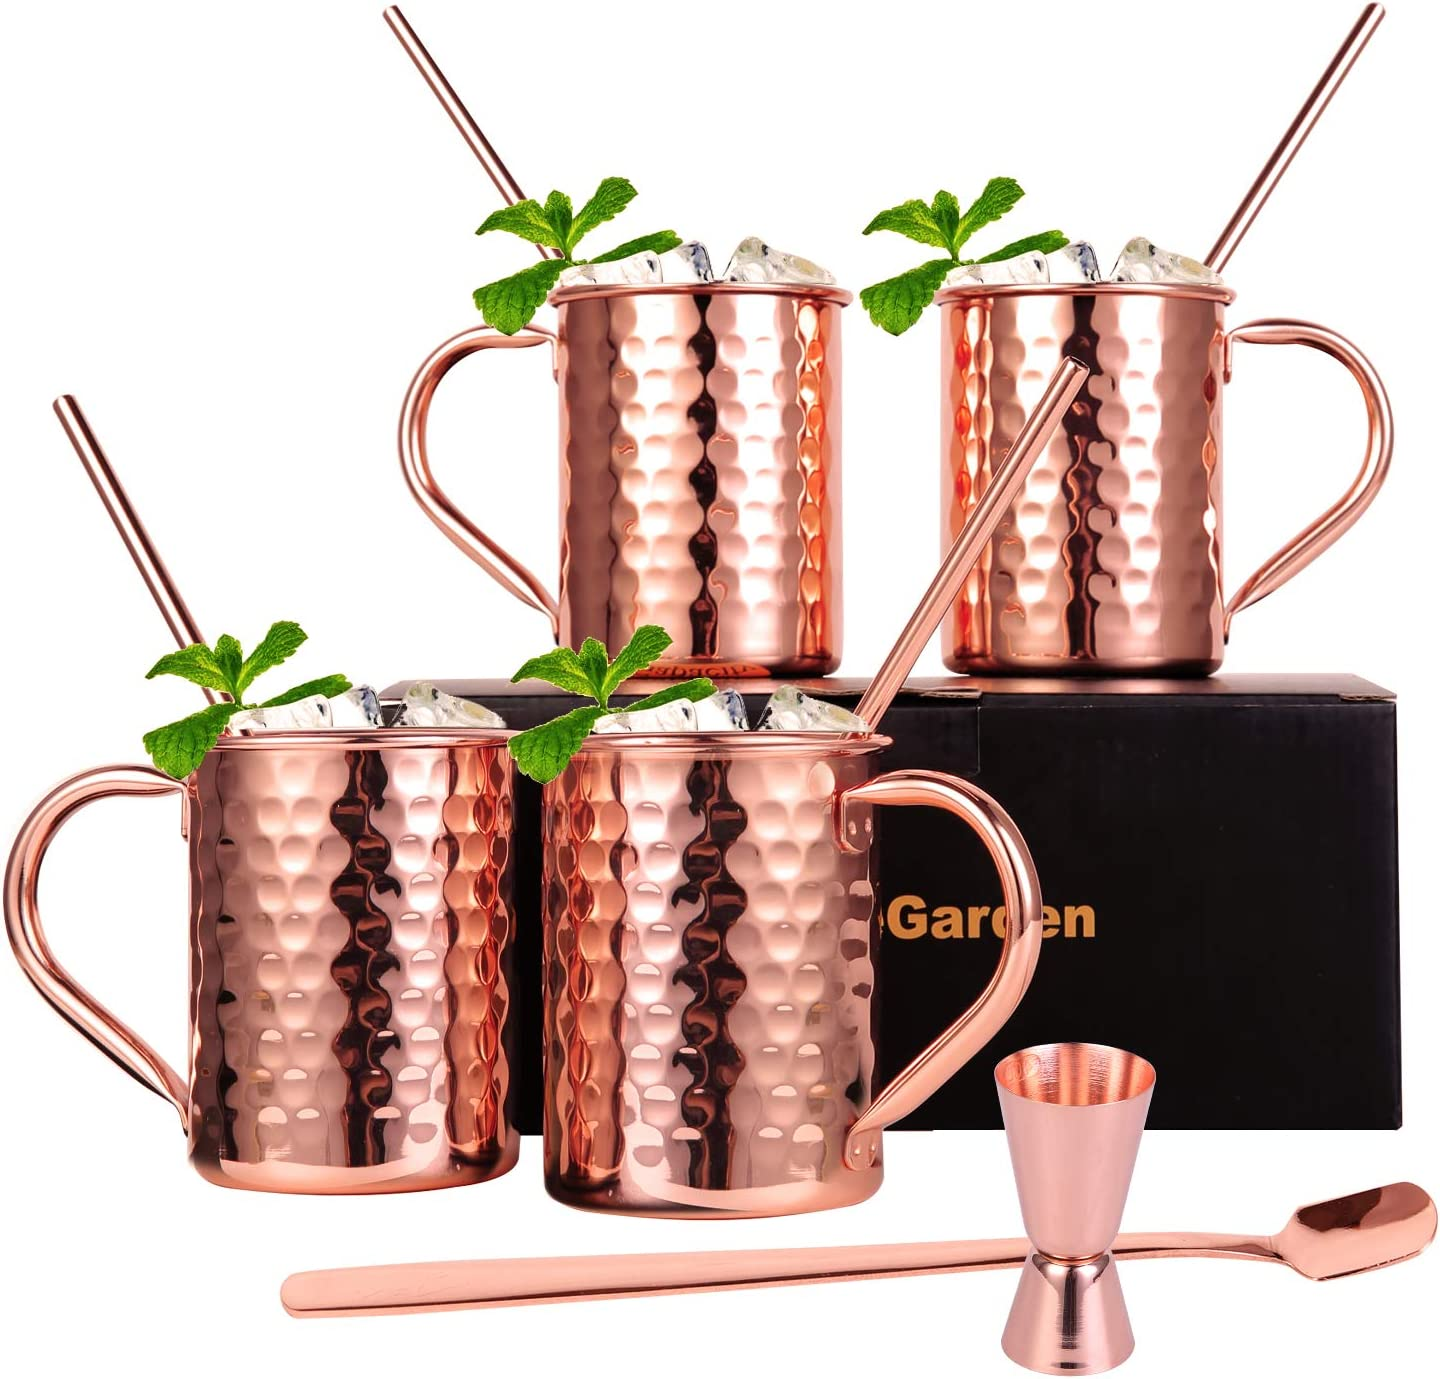 InnoStrive Moscow Mule Mugs Set of 4 Moscow Mule Cups 100% Food-Safe Pure 13 OZ Copper mugs With 4 Cocktail Copper Straws 1 Stirring Spoon and 1 Shot Glass